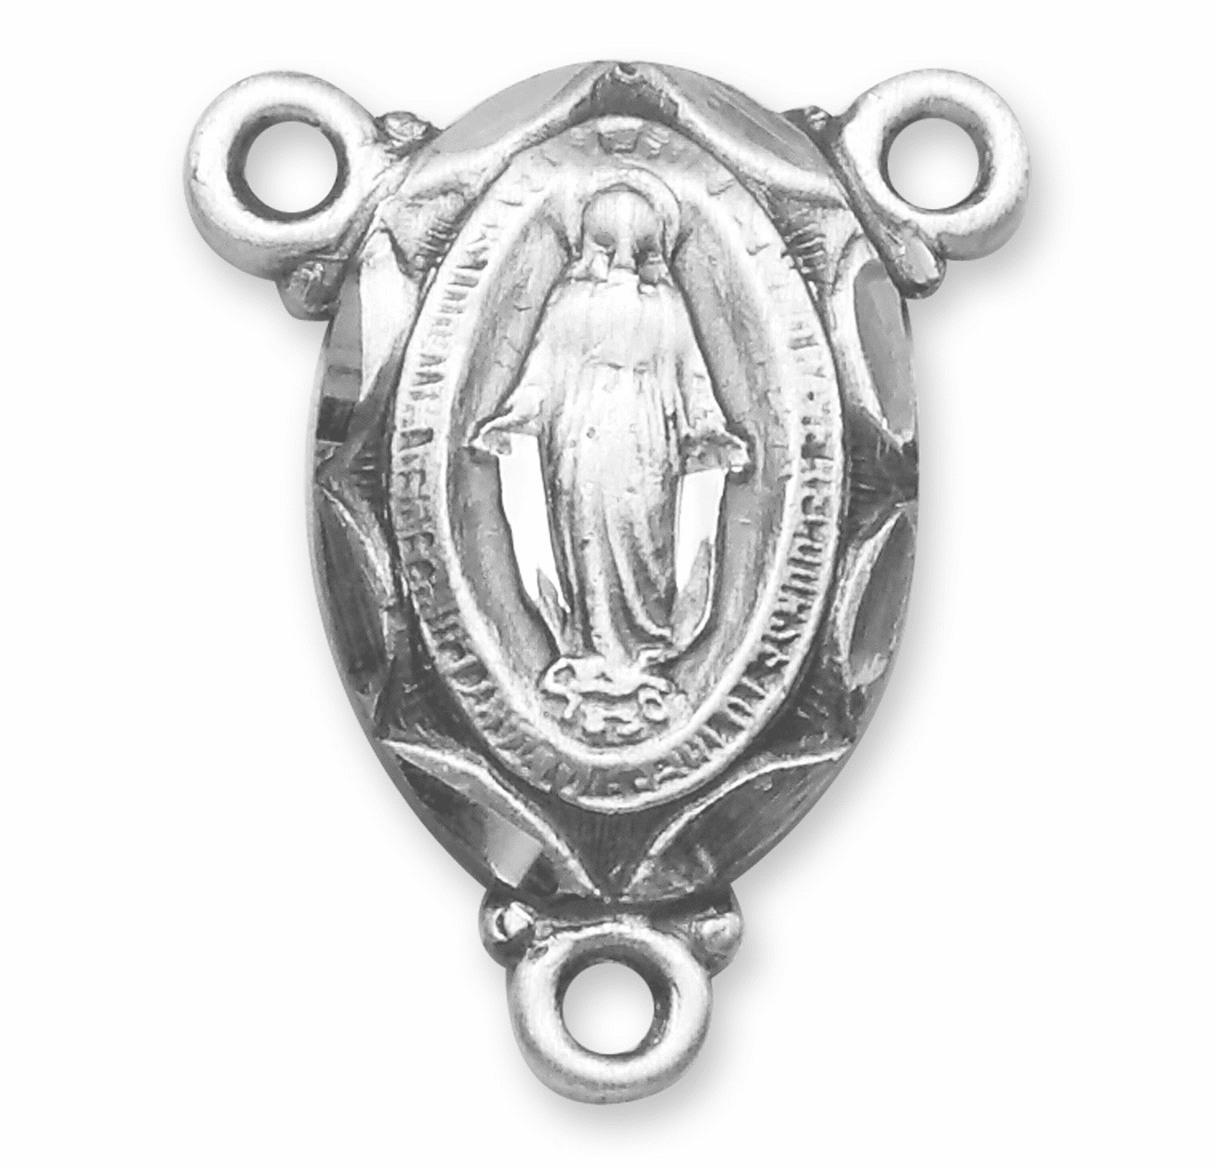 Small Miraculous Medal Sterling Silver Rosary Center Part by HMH Religious